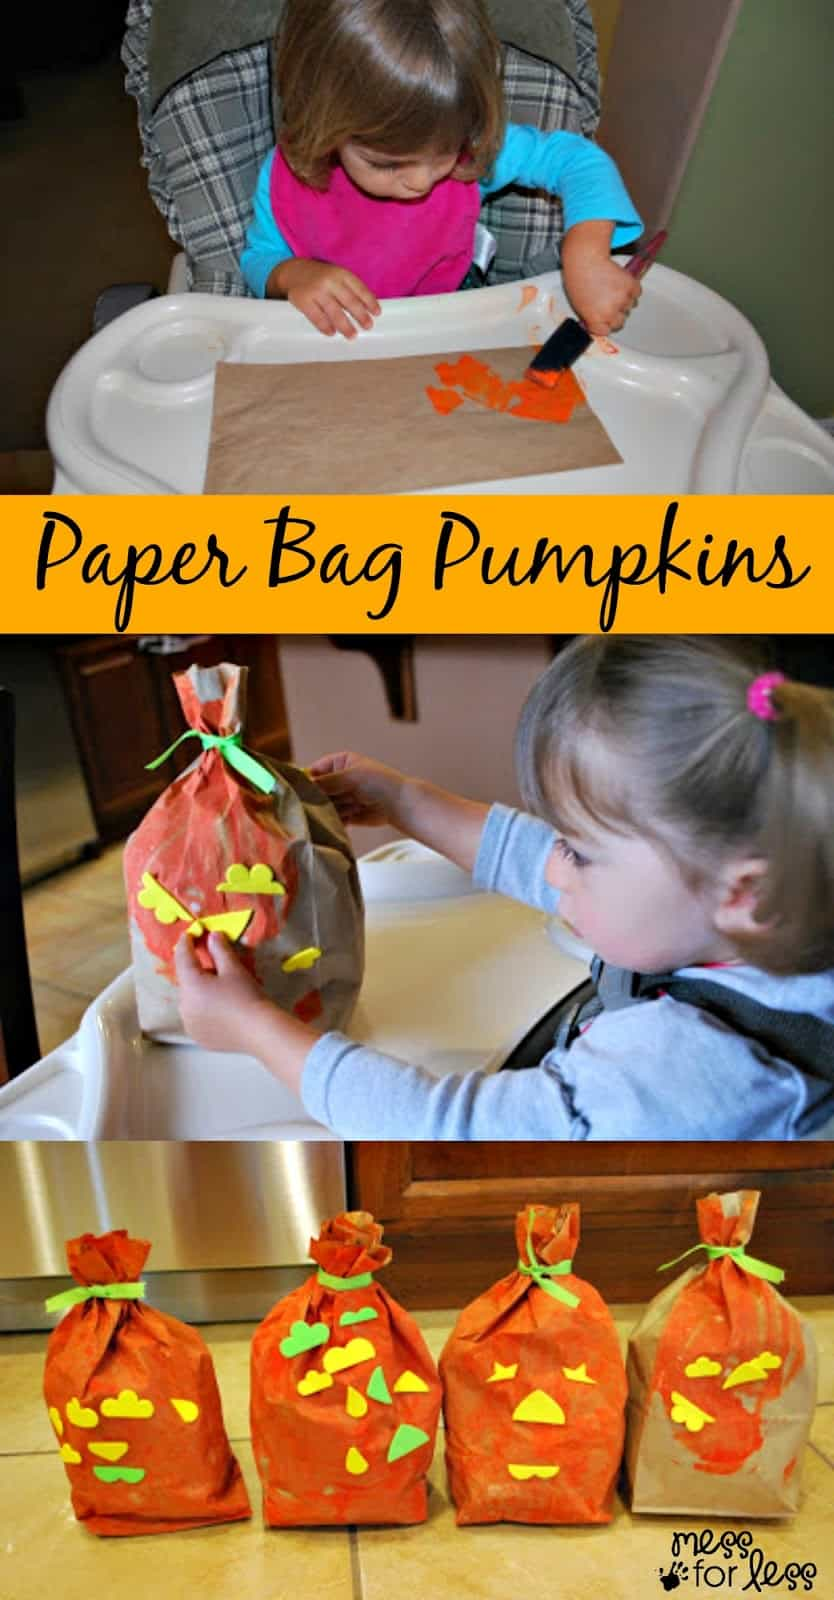 Halloween Crafts - Paper Bag Pumpkins: Simple for kids of all ages to make and decorate.